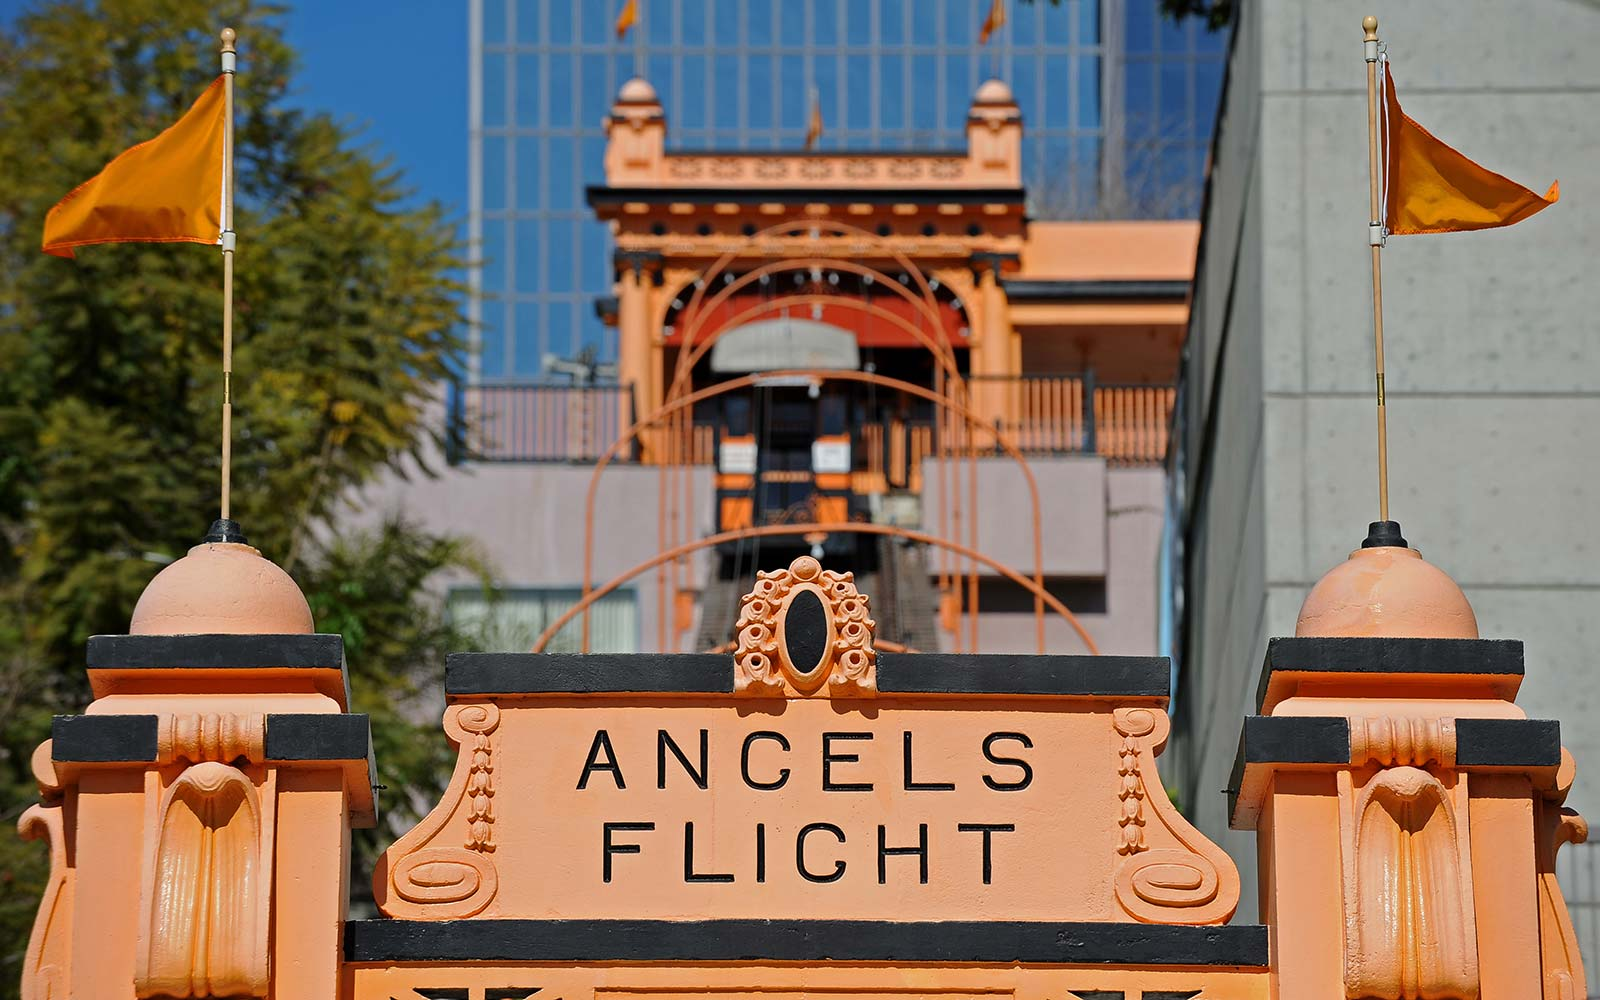 Los Angeles' Historic Angels Flight Will Reopen This Week